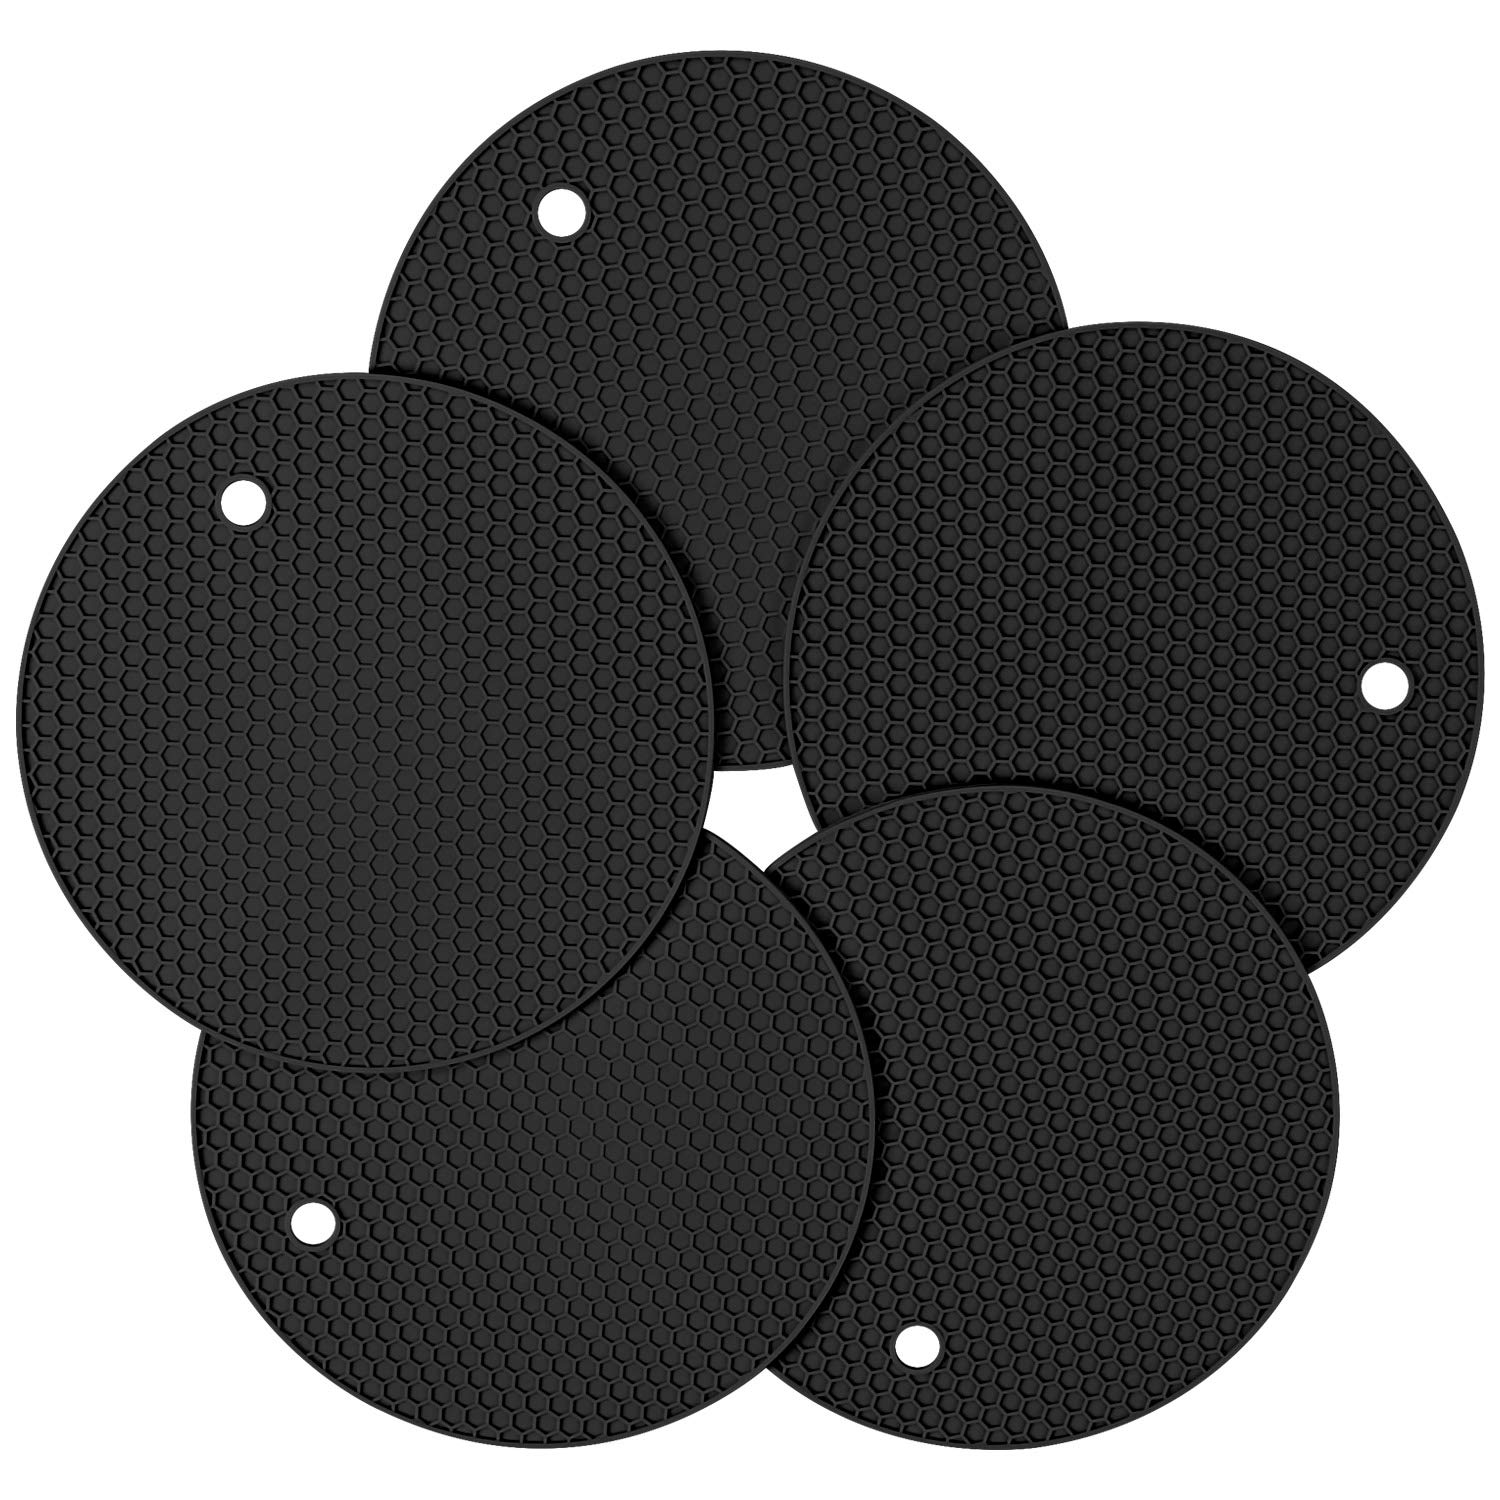 Gifts for Thanksgiving Day, Christmas, Silicone Pot Holder and Oven Mitts, Multipurpose Non-slip Insulation Honeycomb Rubber Hot Pads Trivet, Heat Resistant Antislip Place Mat, Pack of 5 (Black)